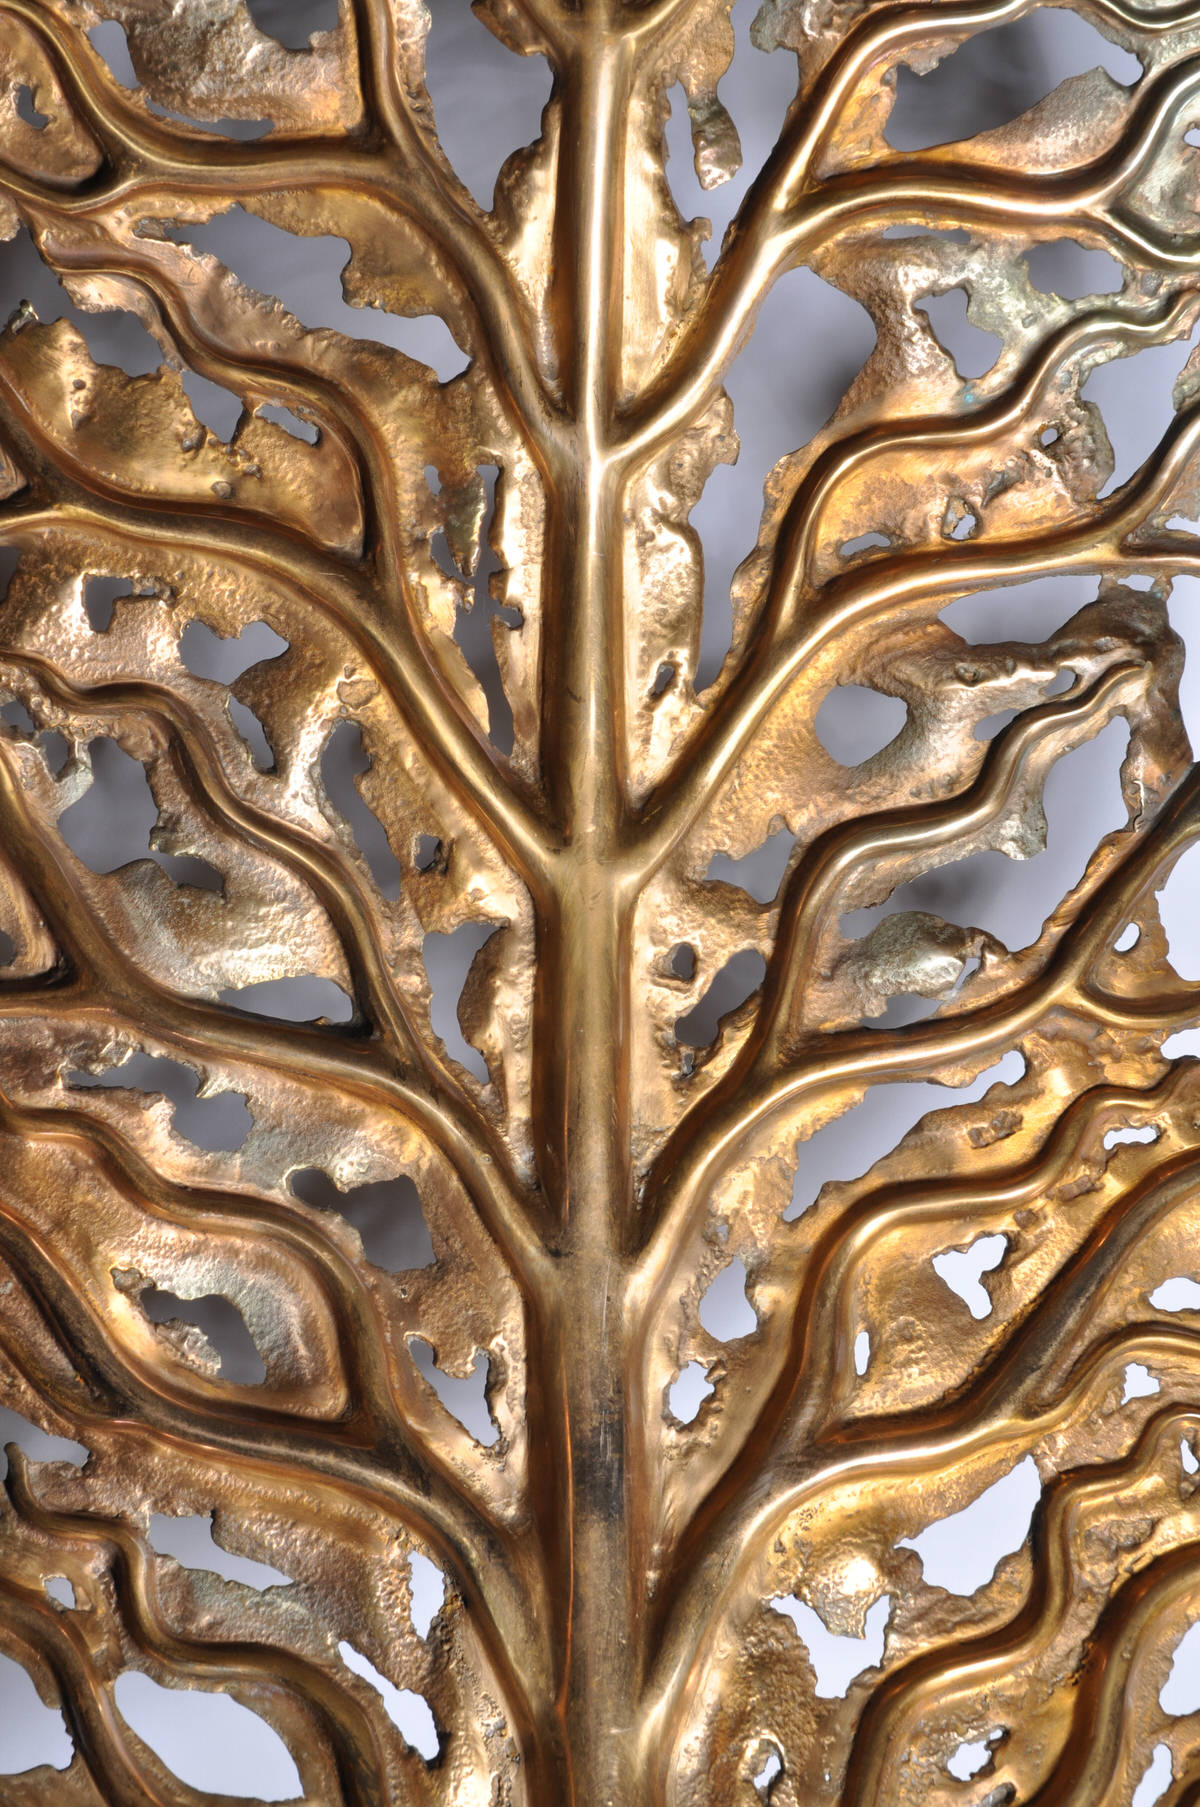 Life Leaf Bronze Contemporary  British Gallery Artist Sculpture tree sculpture corporate sculpture sculpture for hotels and restaurants garden sculpture RHS Cheslea Flower Show by Mark Reed